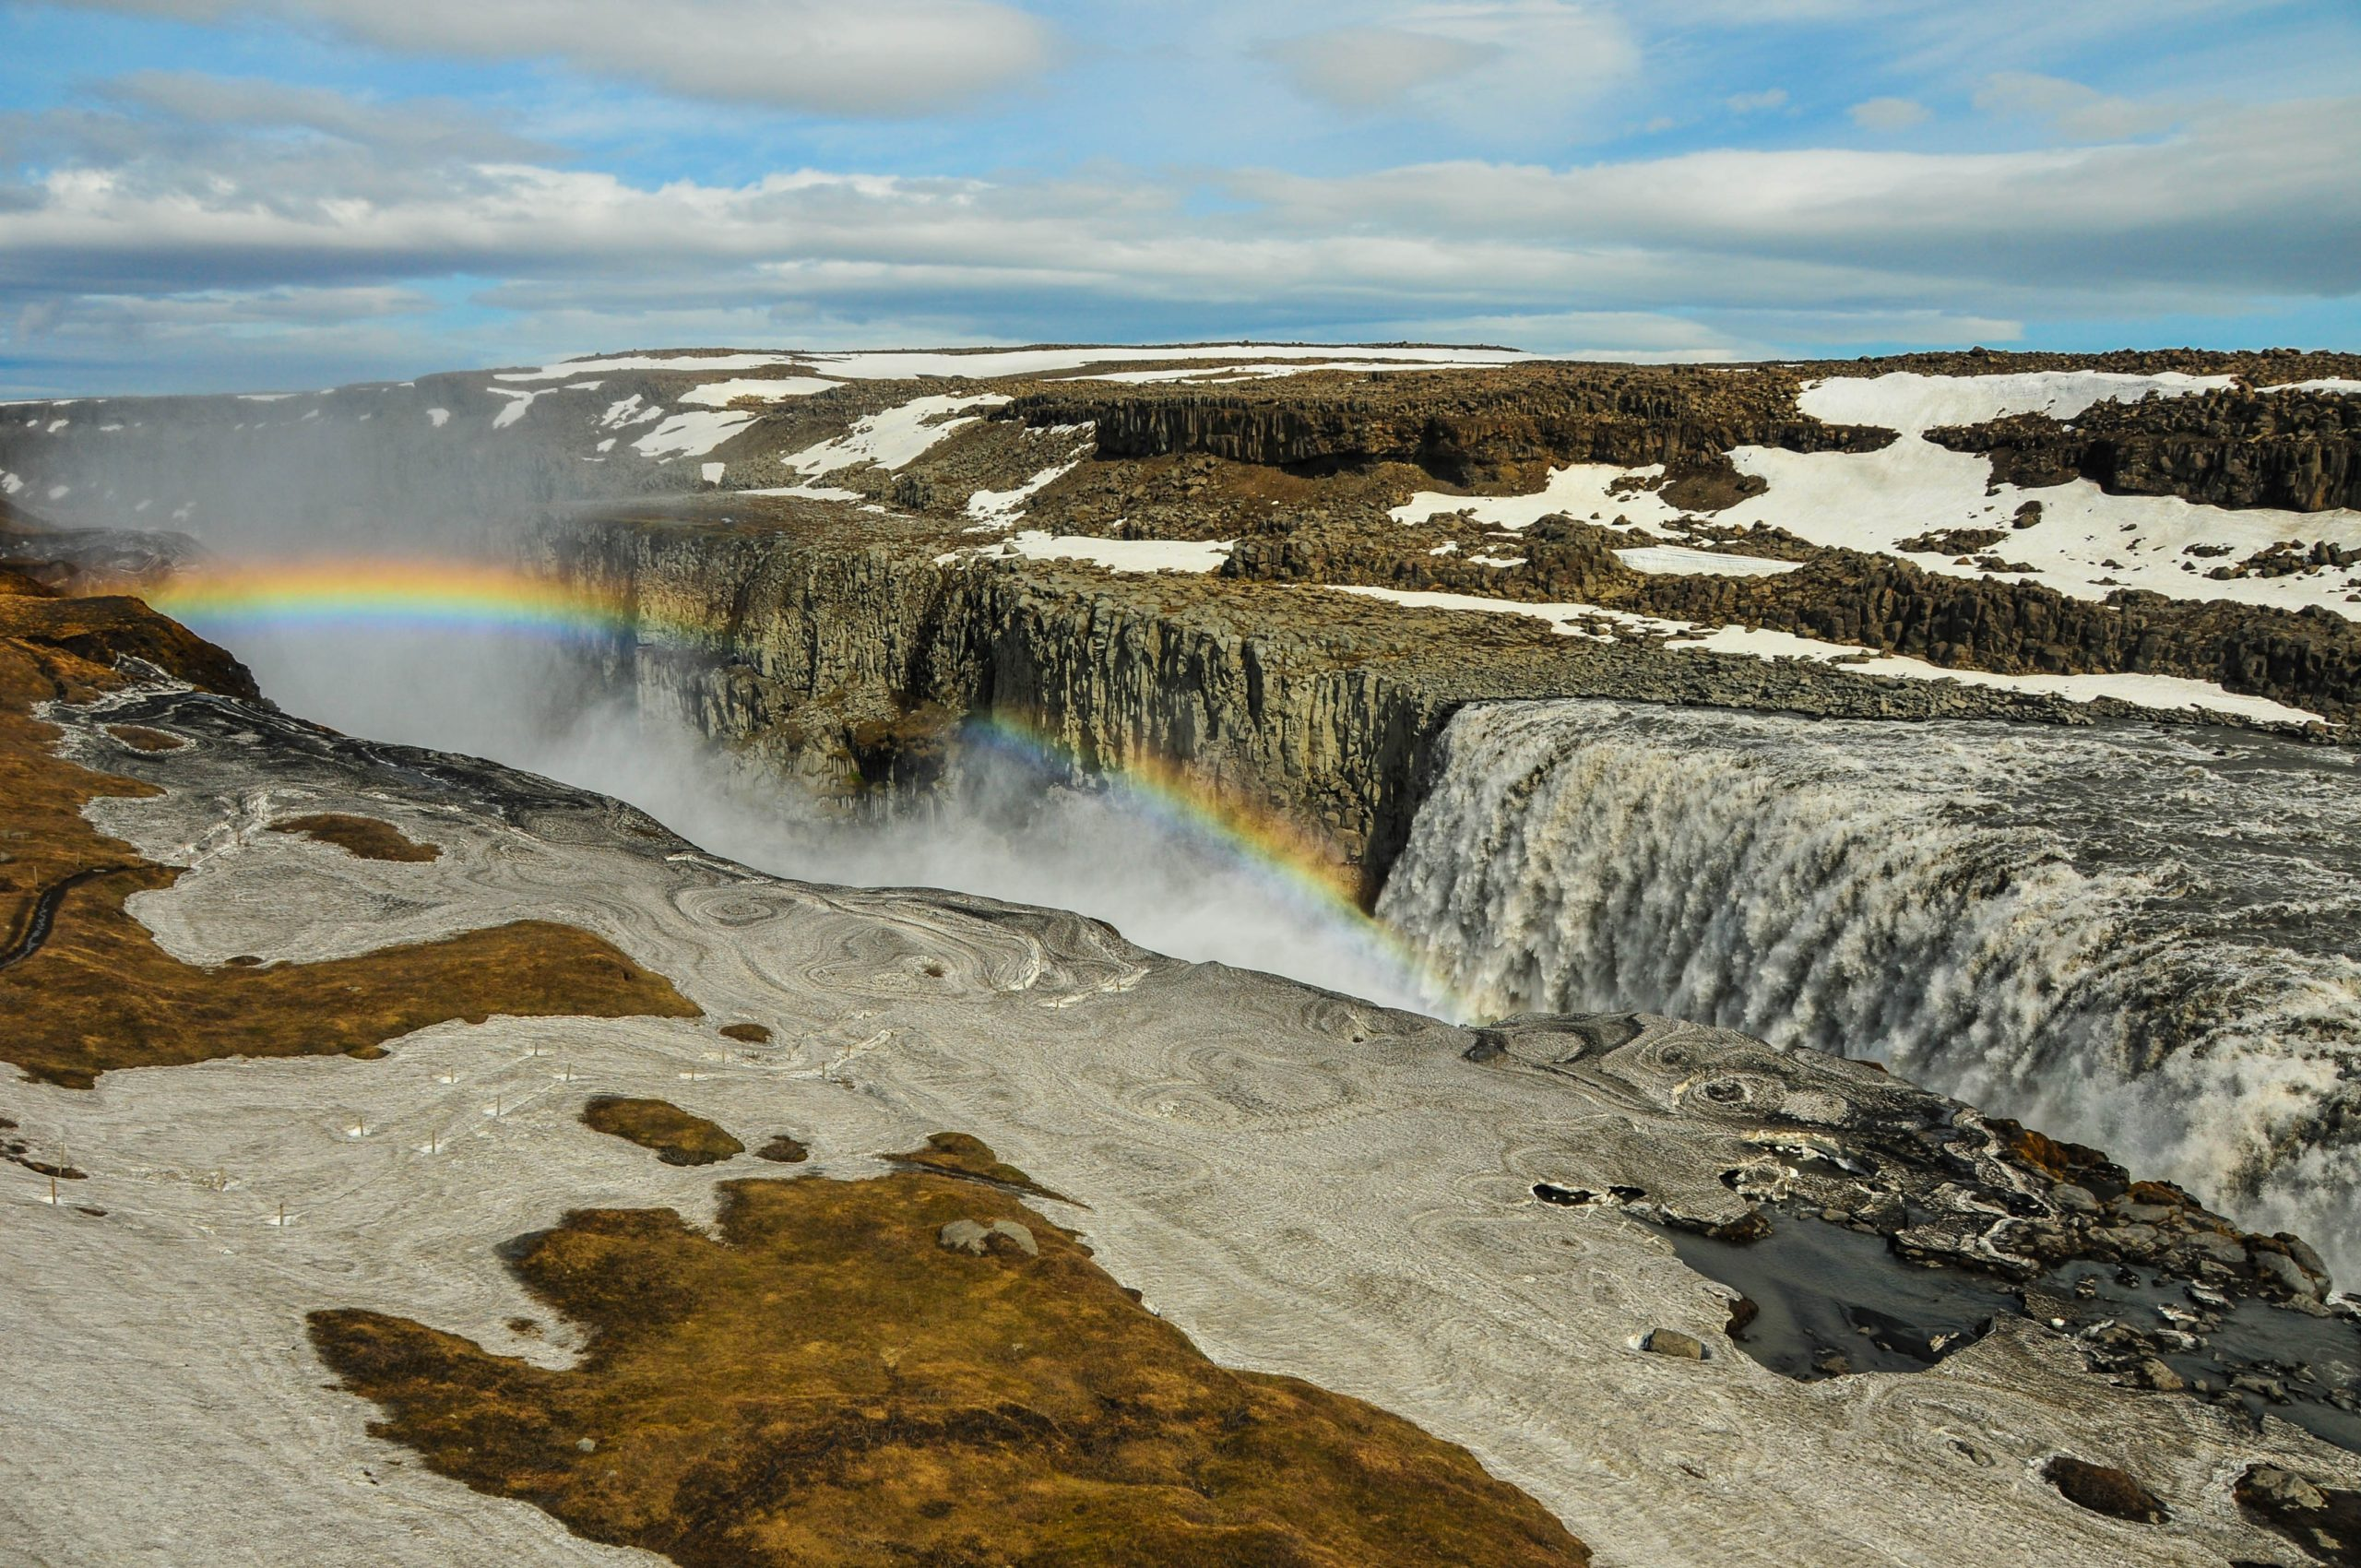 Dettifoss waterfall in northern Iceland with a rainbow across the falls